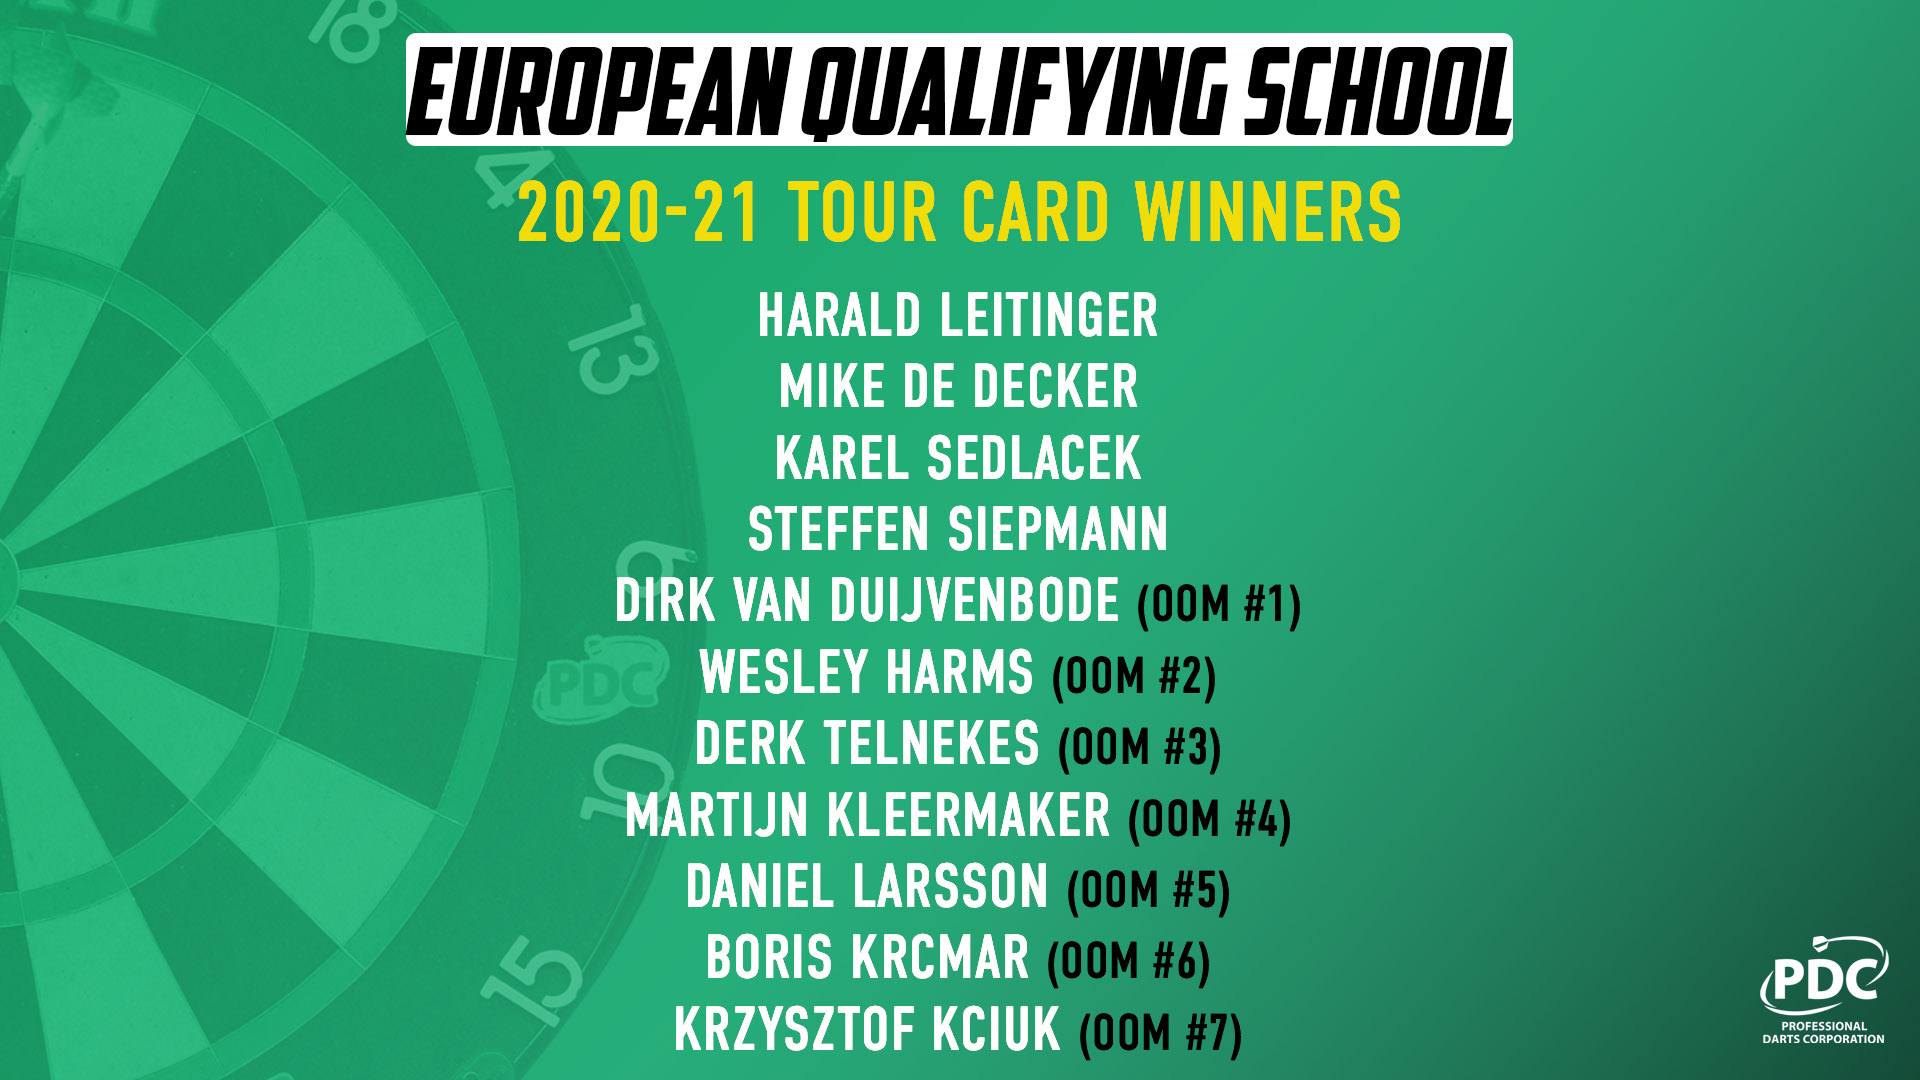 European Q School winners (PDC)